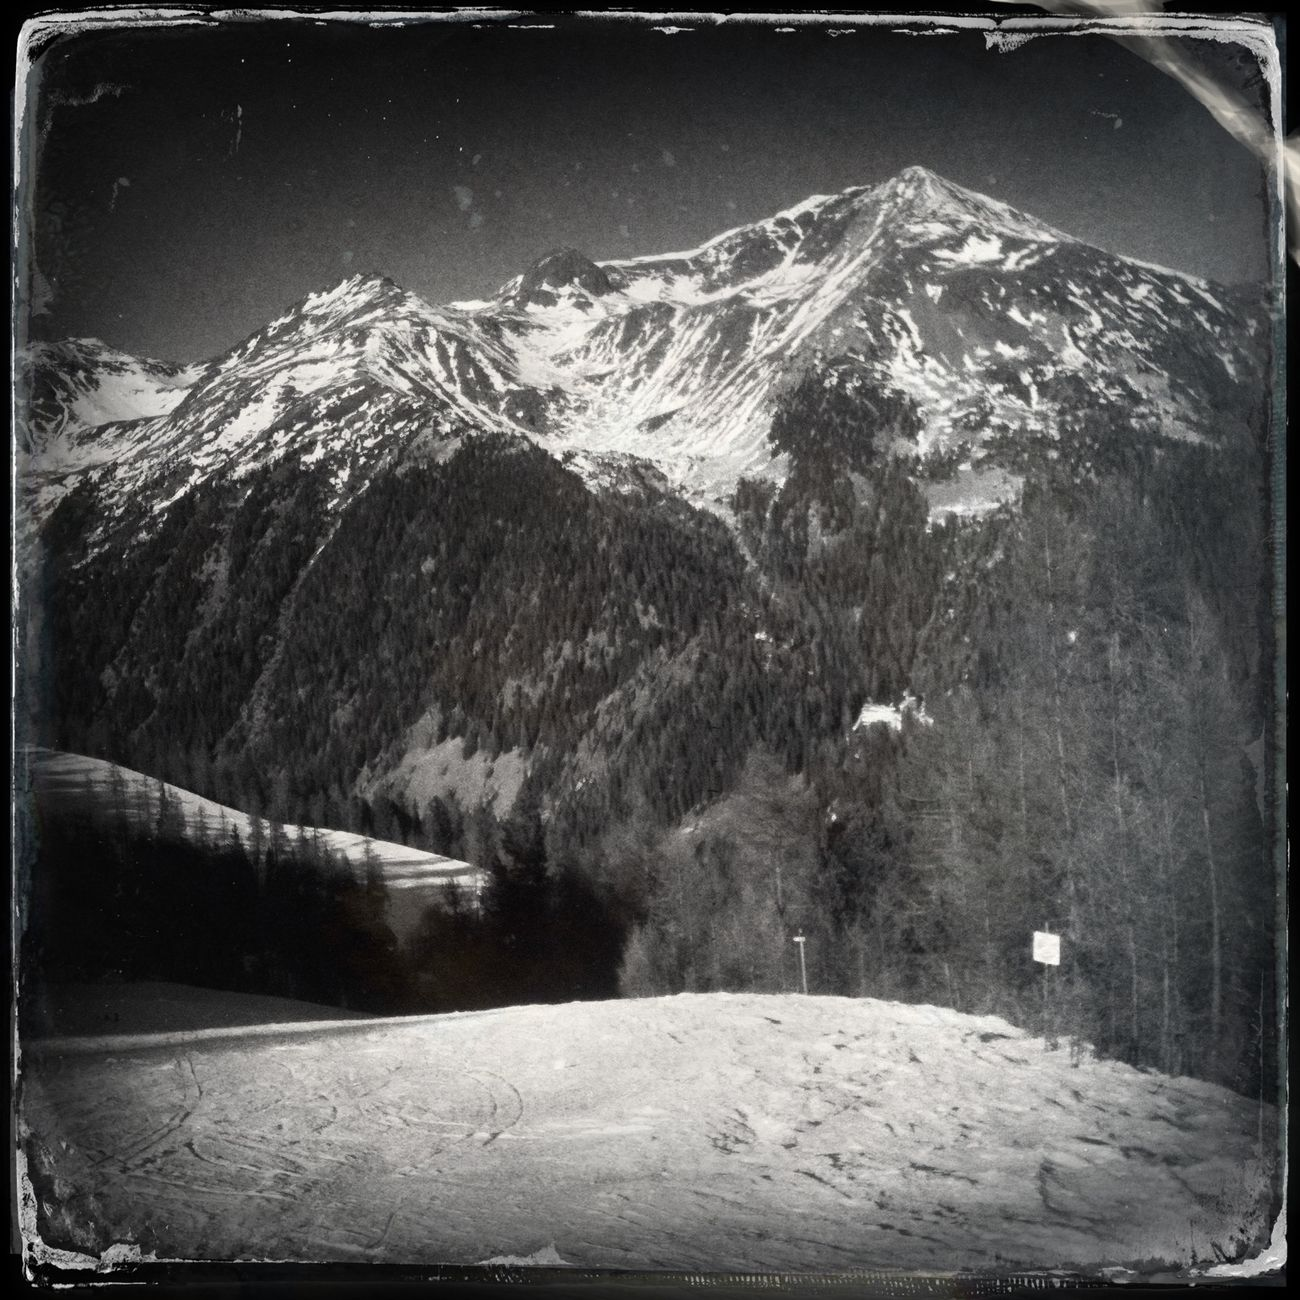 The top of Mt. Hoher Dieb - Gran Ladro Blackandwhite Ultental The_guido Hipstamatic